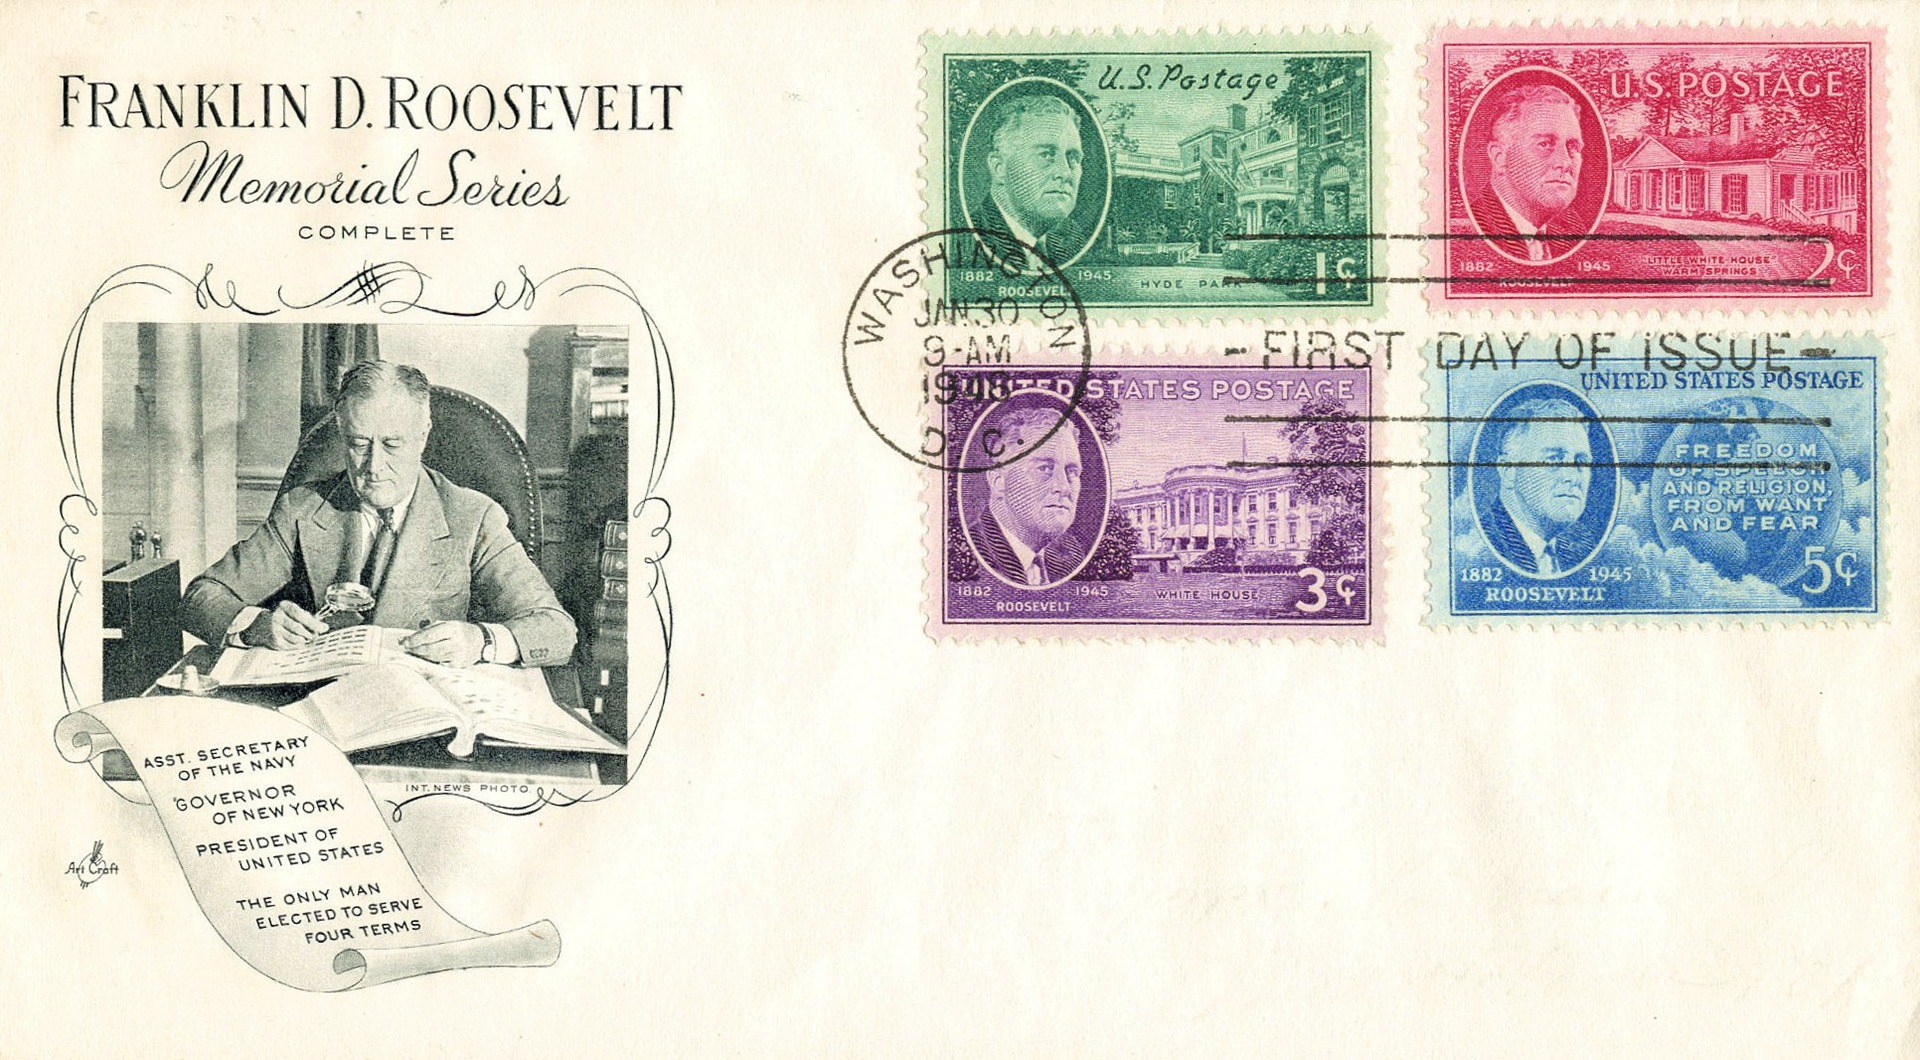 United States - Scott #930-933 (1945-1946) first day cover with complete set